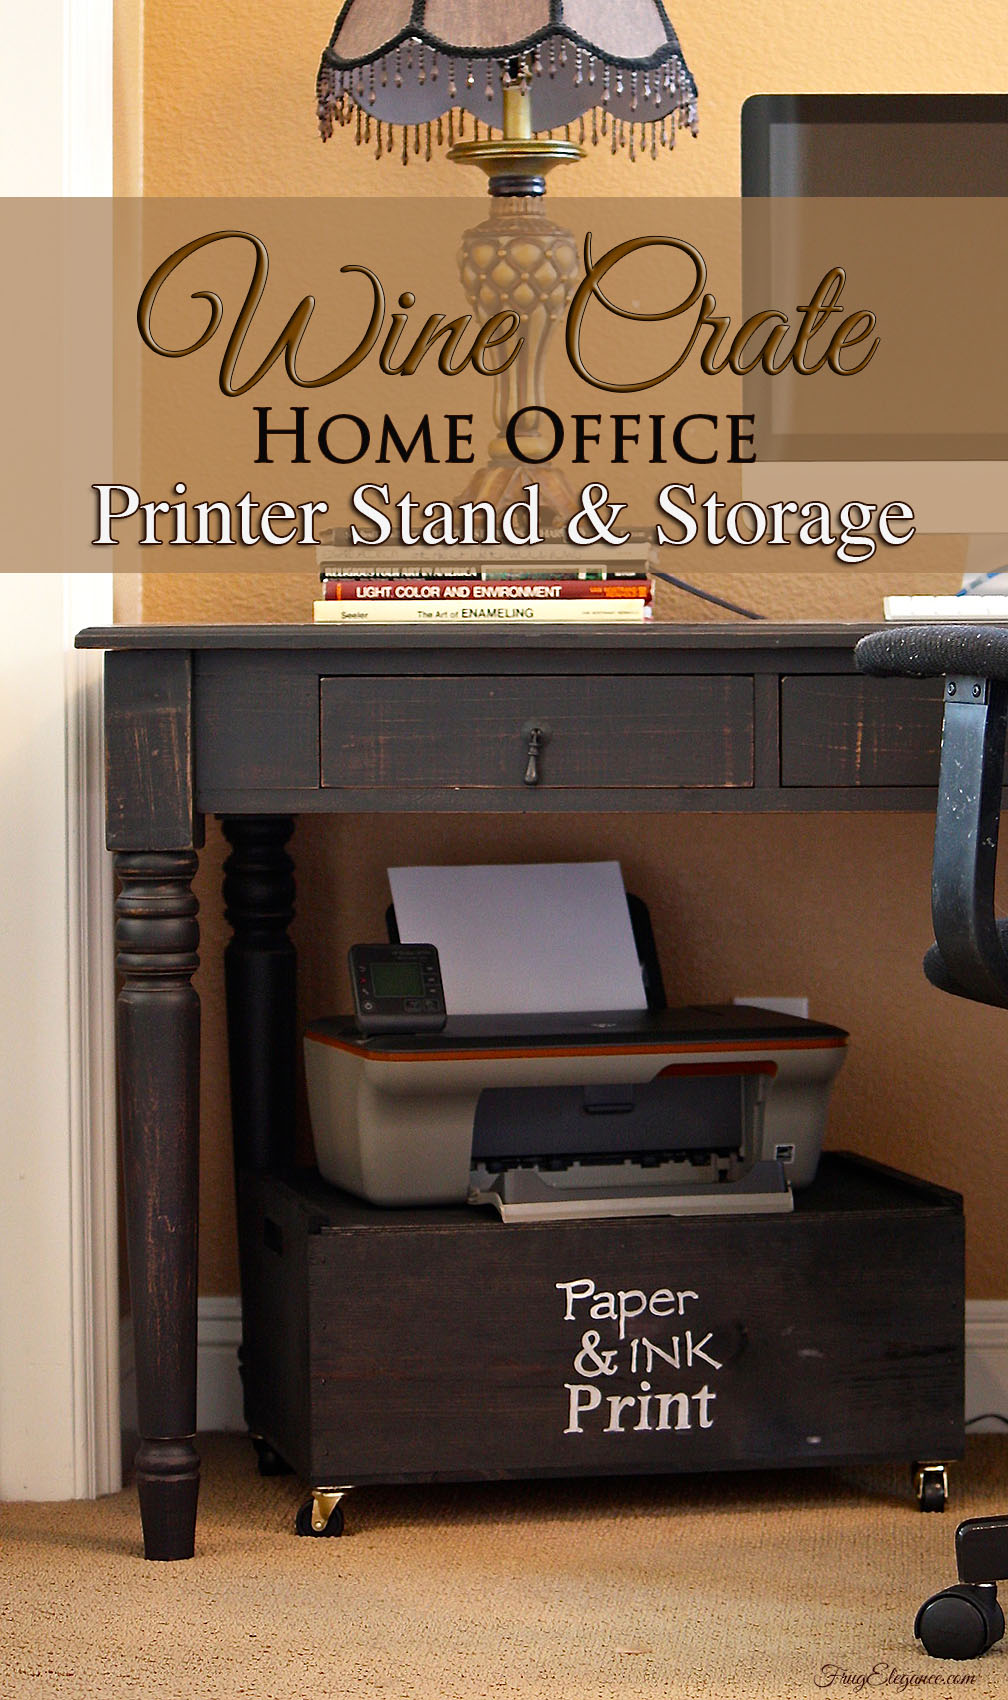 Incroyable Office Printer Stand With Storage